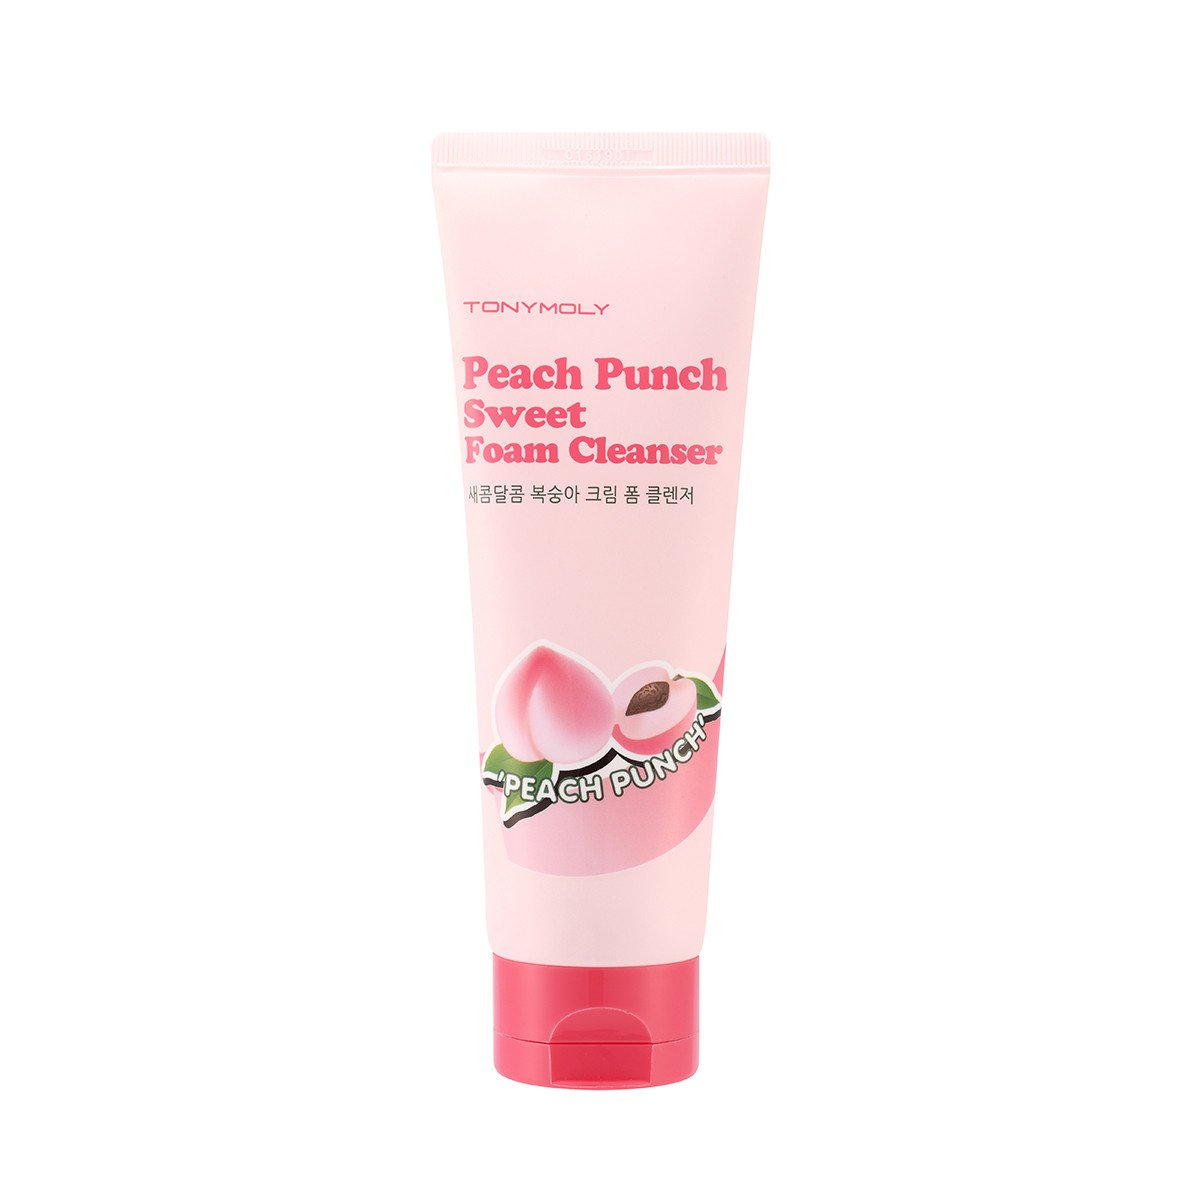 TonyMoly Peach Punch Sweet Foam Cleanser